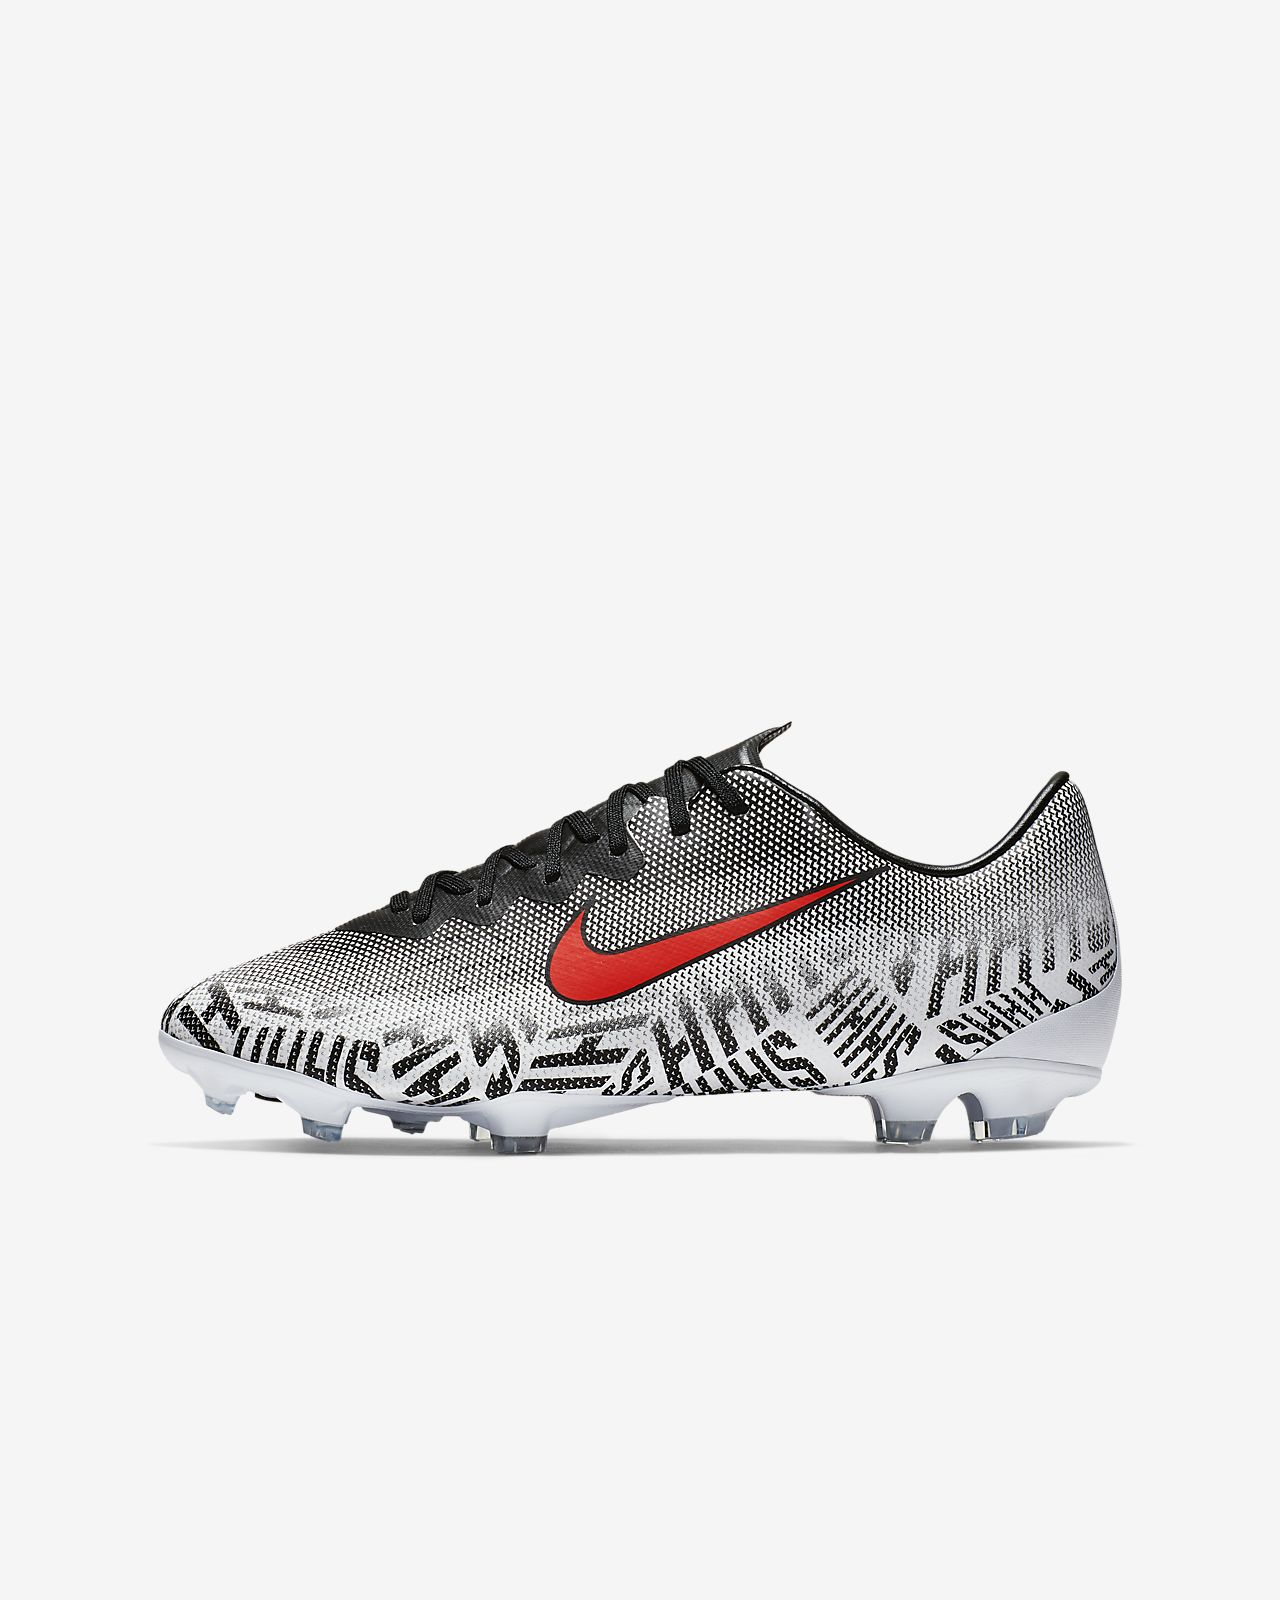 d38029994f0 Nike Jr. Mercurial Vapor 12 Elite Neymar Jr. FG Older Kids  Firm ...